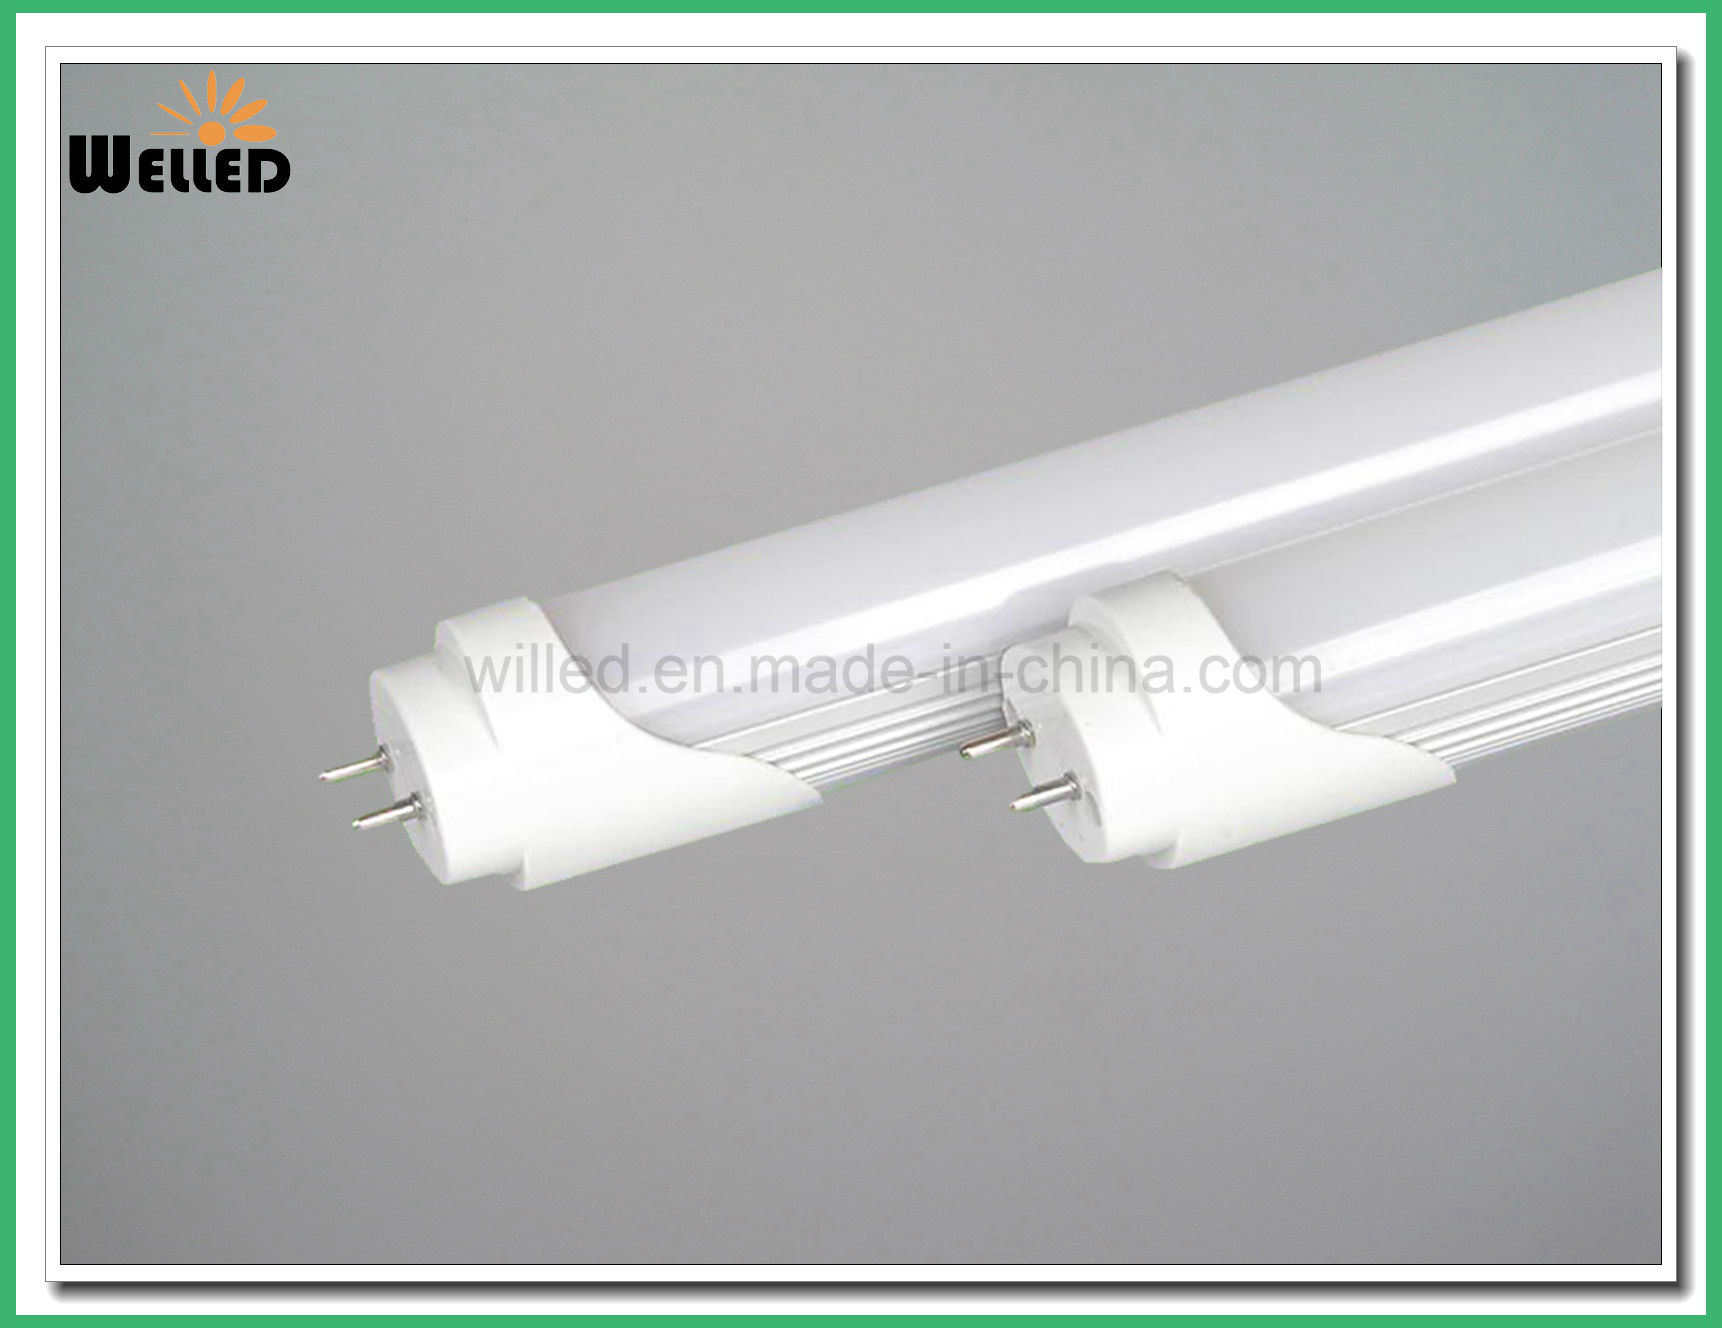 Aluminum Housing LED T8 Fluorescent Tube Light 1.5m 25W 30W with Frosted or Clear Cover